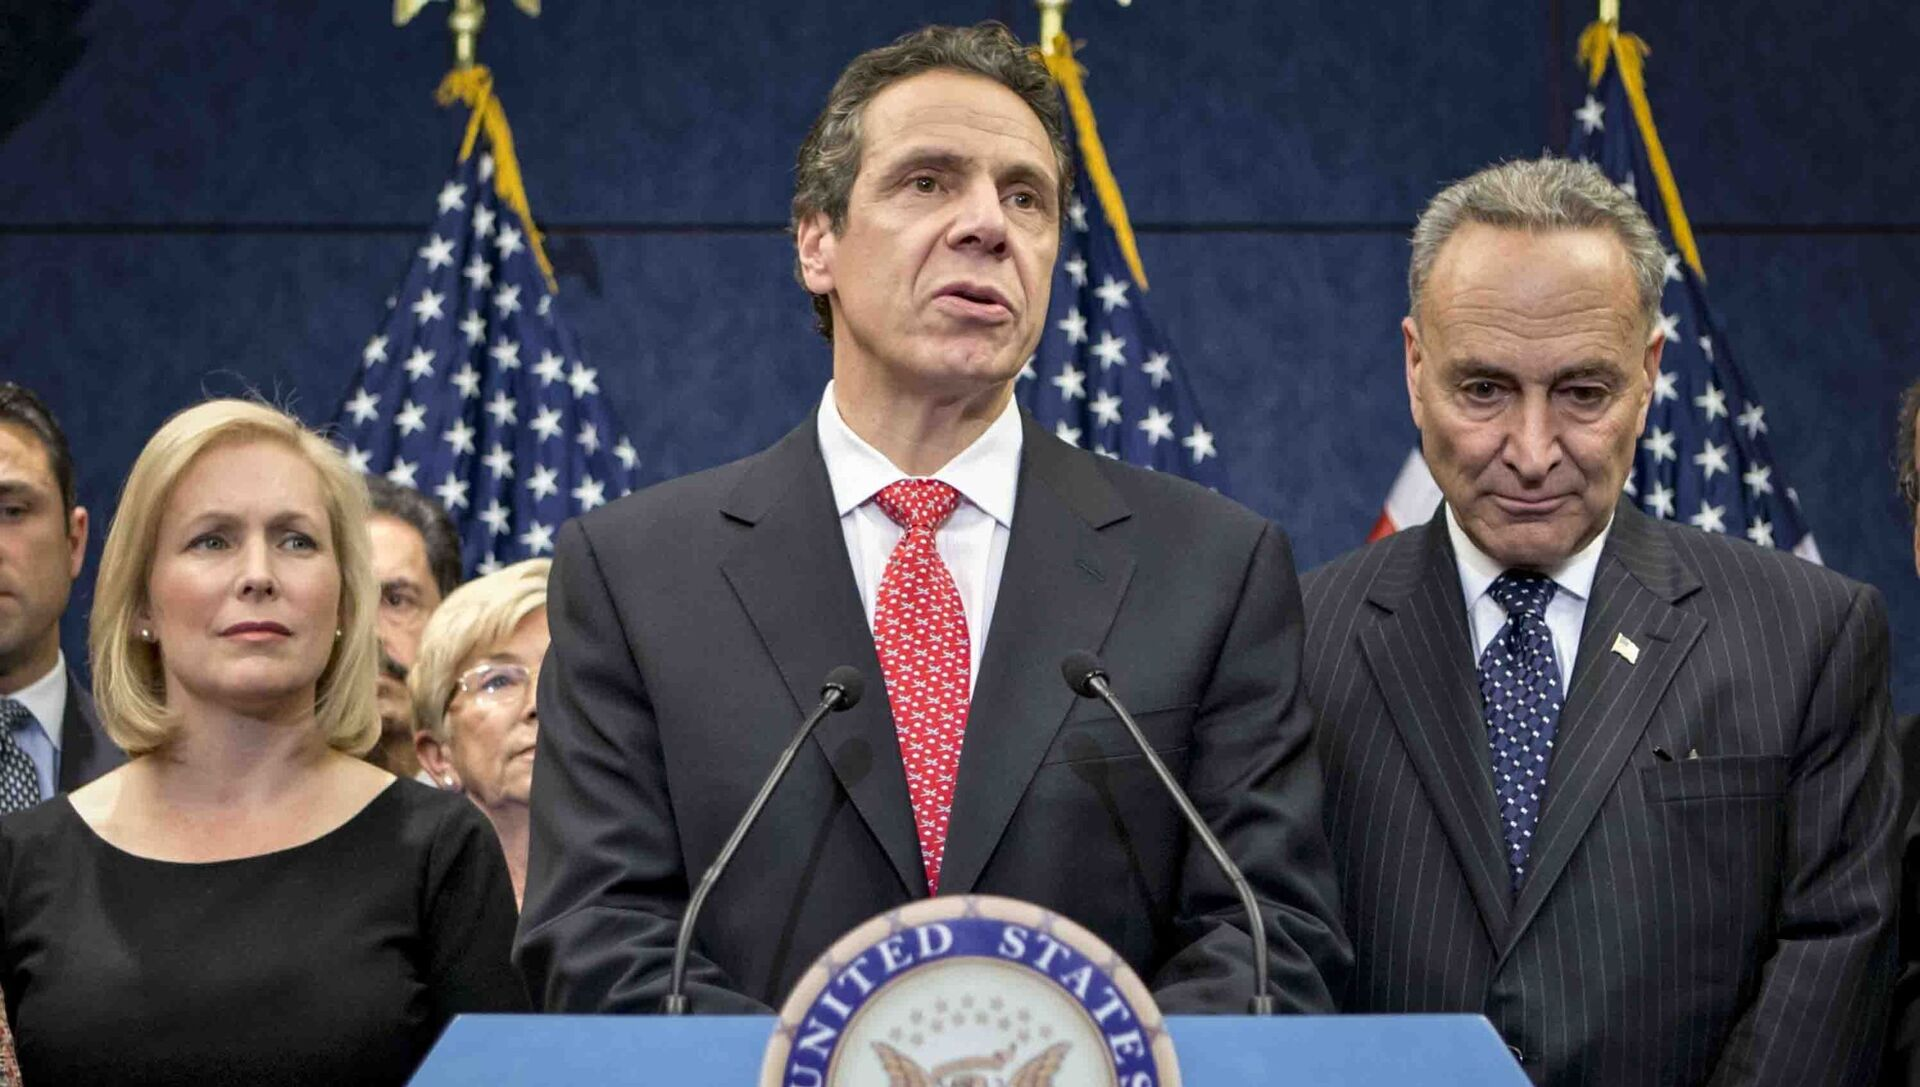 n this Dec. 3, 2012, file photo, New York Gov. Andrew Cuomo is joined by the New York Congressional delegation including, Sen. Kirsten Gillibrand, left, and Sen. Charles Schumer, right, for a news conference at the Capitol in Washington. Schumer and Gillibrand on Friday, March 12, 2021, are calling on Cuomo to resign, adding the most powerful Democratic voices yet to calls for the governor to leave office in the wake of allegations of sexual harassment and groping.  - Sputnik International, 1920, 04.08.2021